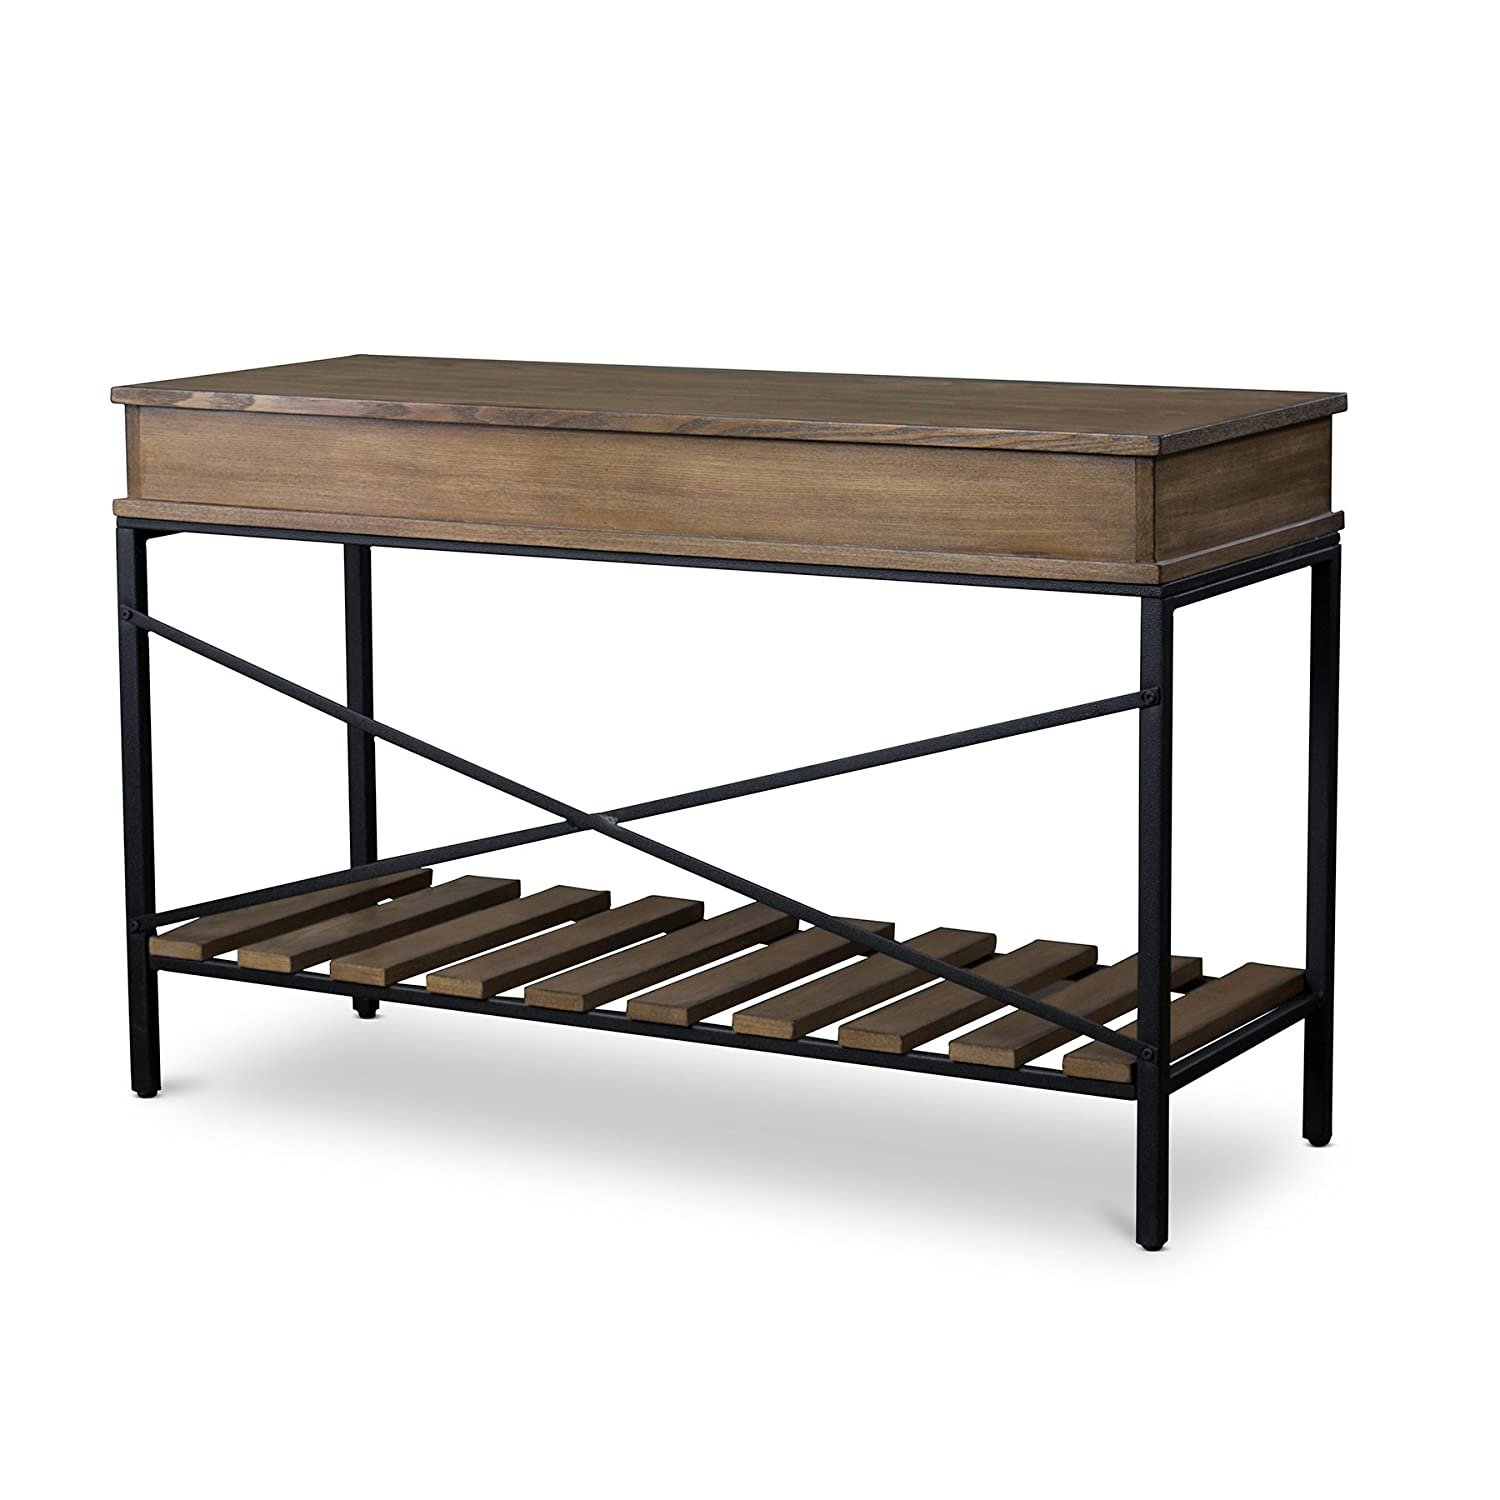 Wood And Metal Console Part - 25: Amazon.com: Baxton Studio Newcastle Wood And Metal Criss-Cross Console  Table, Brown: Kitchen U0026 Dining